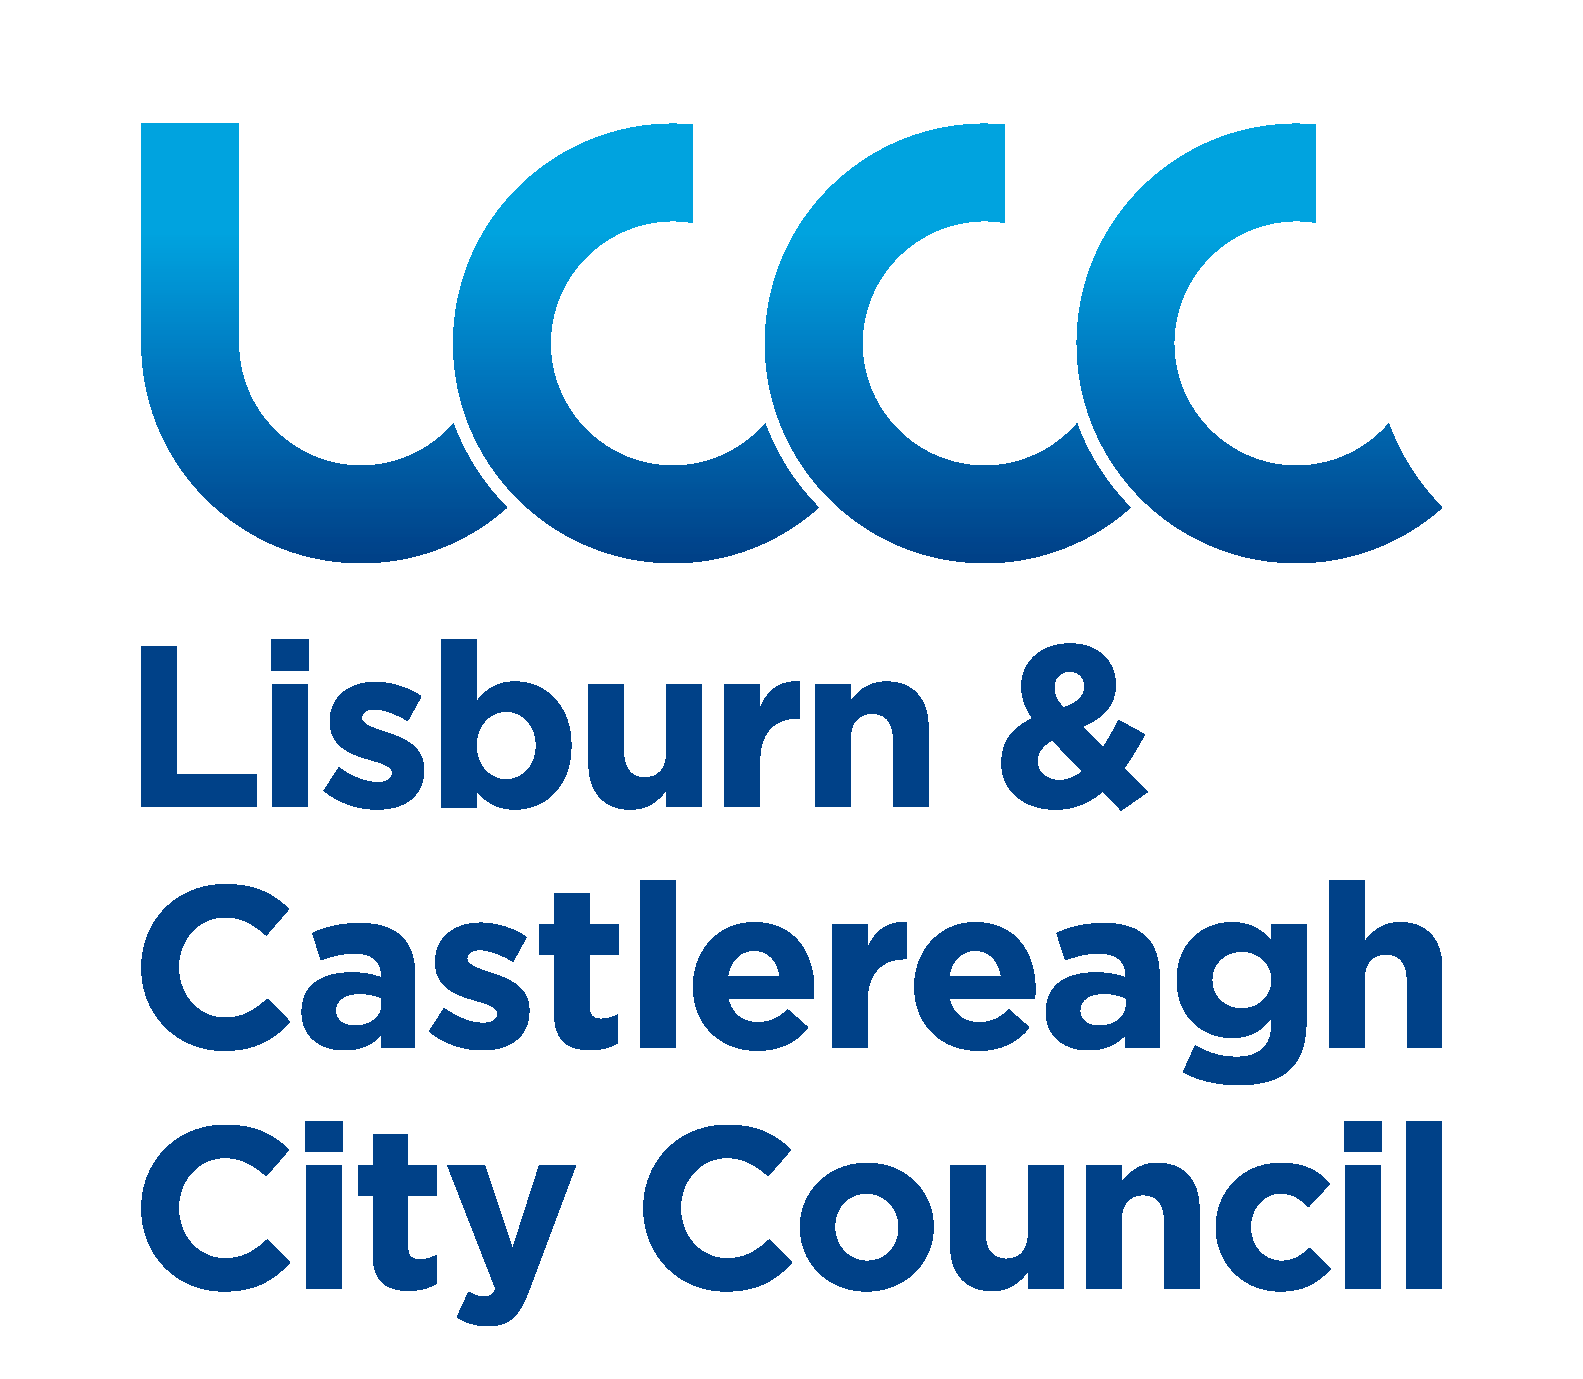 Lisburn and Castlereagh City Council